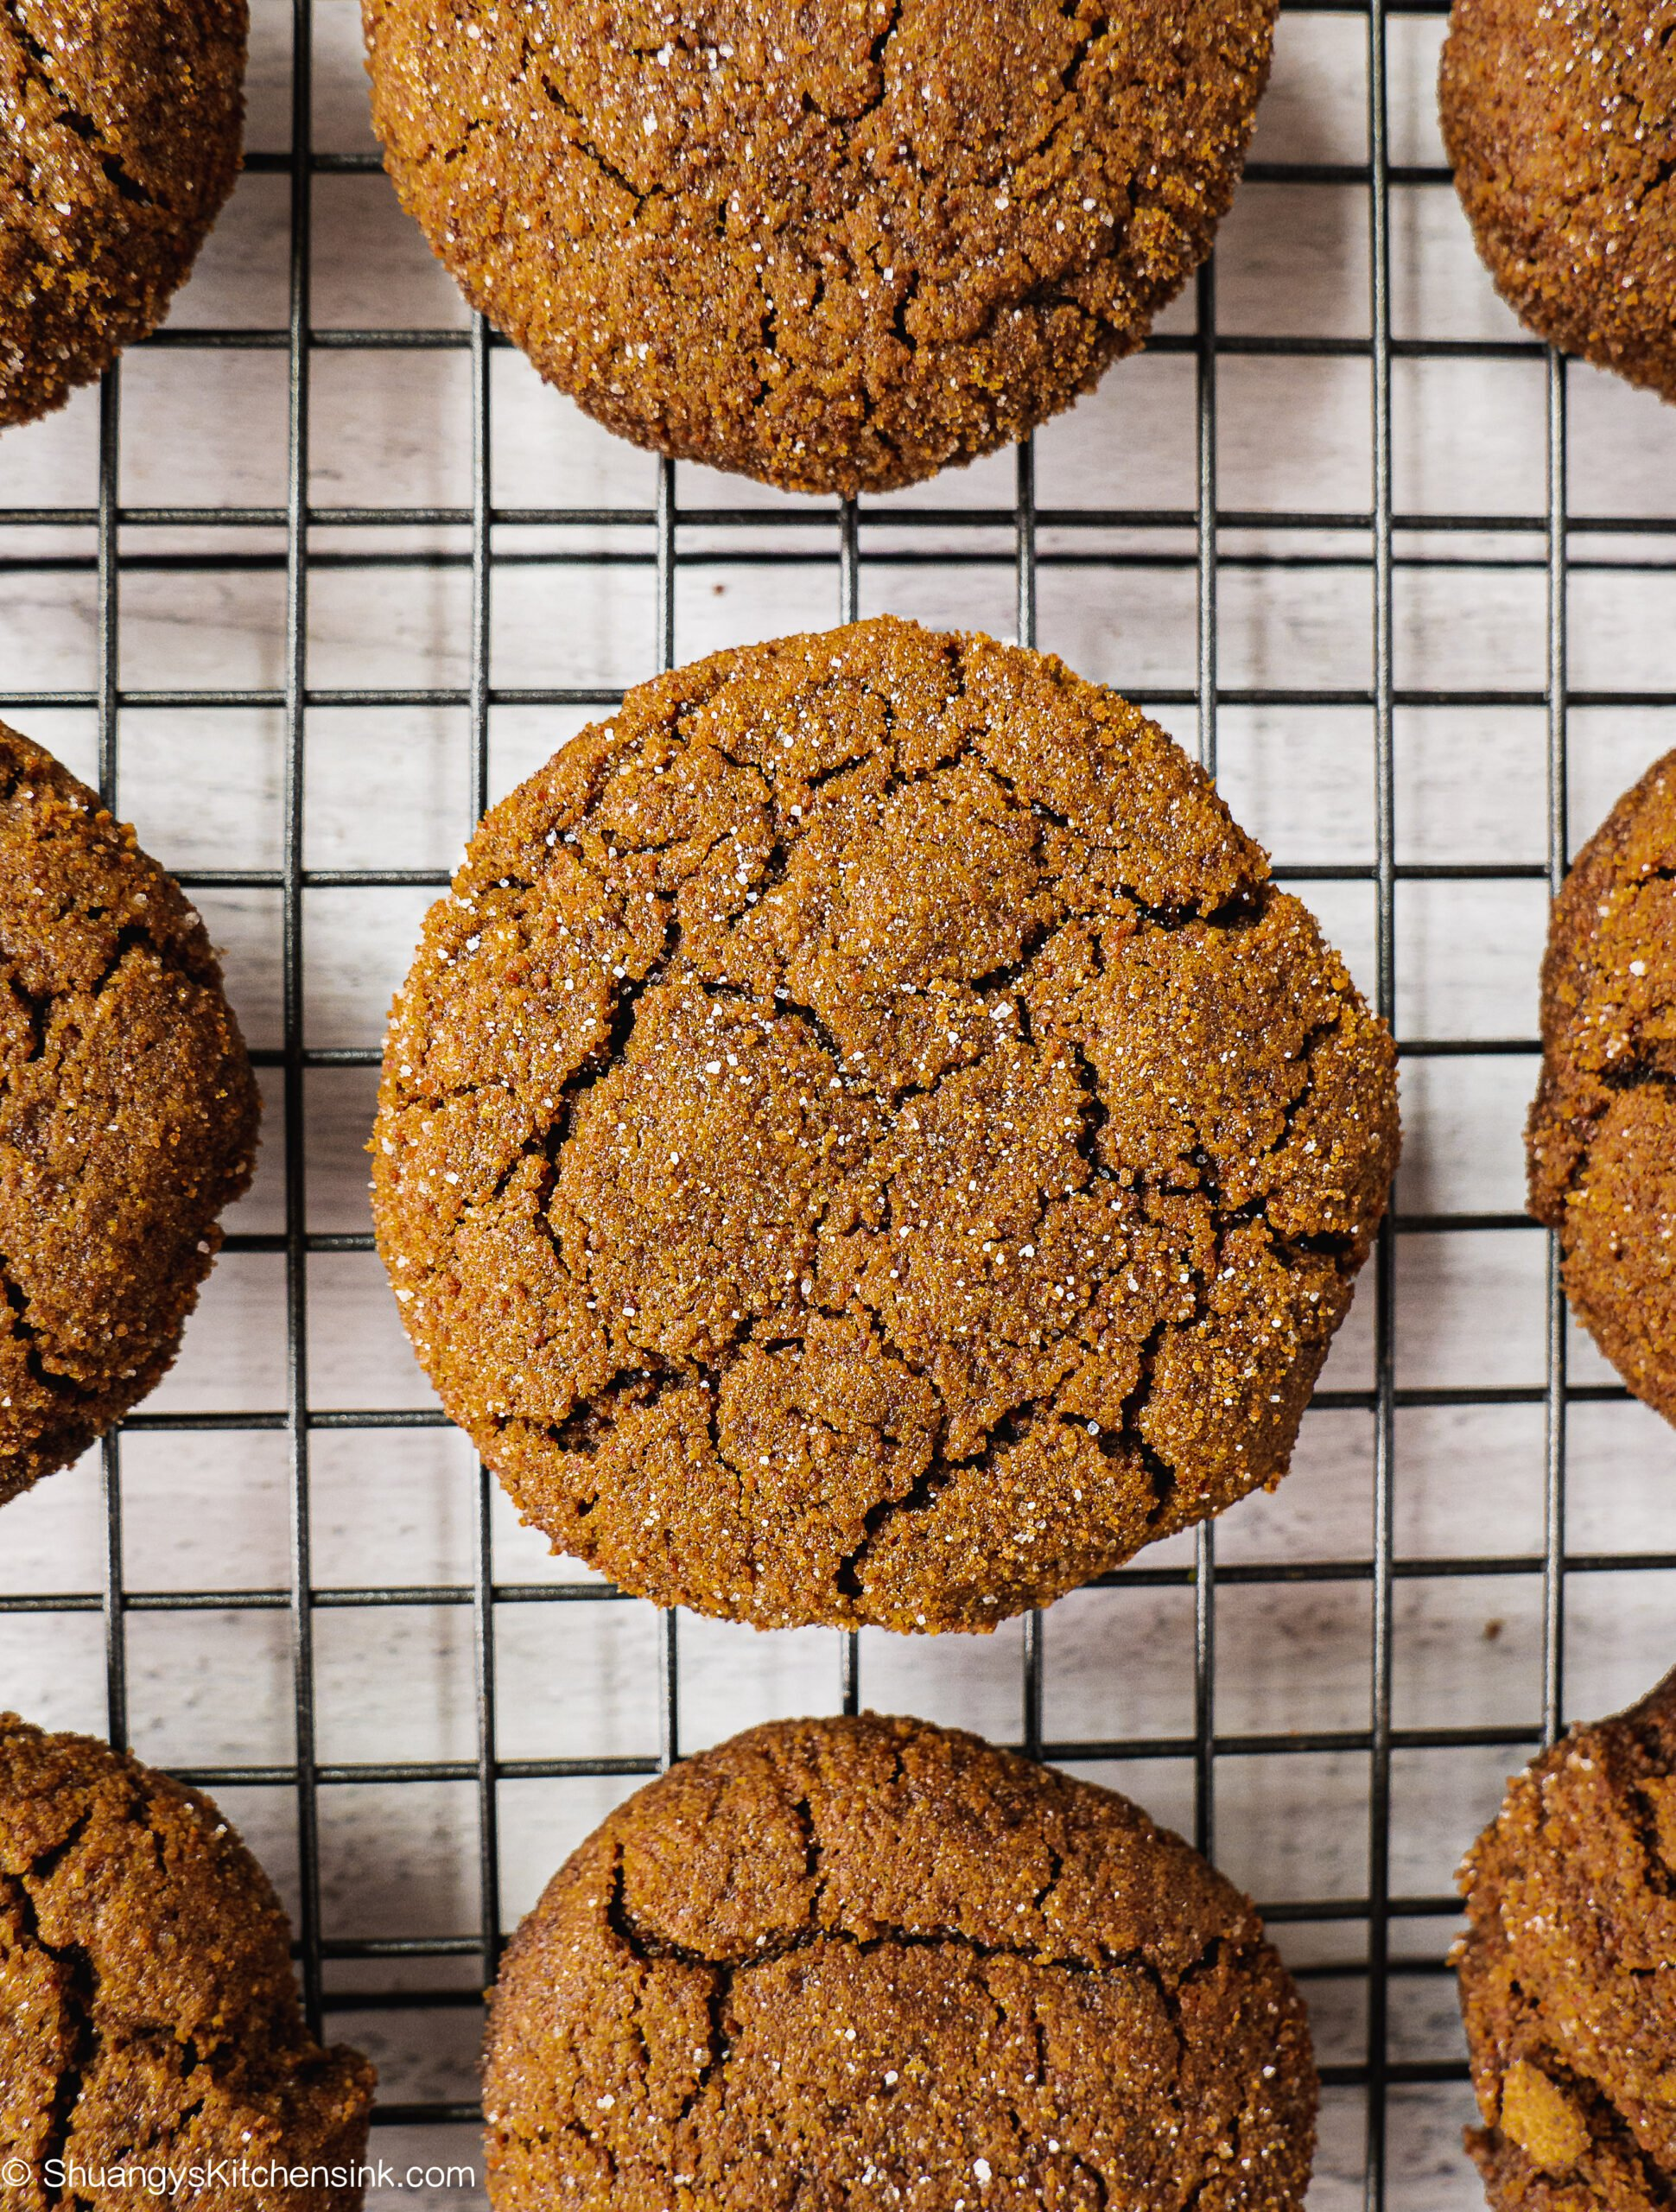 Baked gingerbread cookies cooling on a wire cooling wrack. There is crack on the cookies.